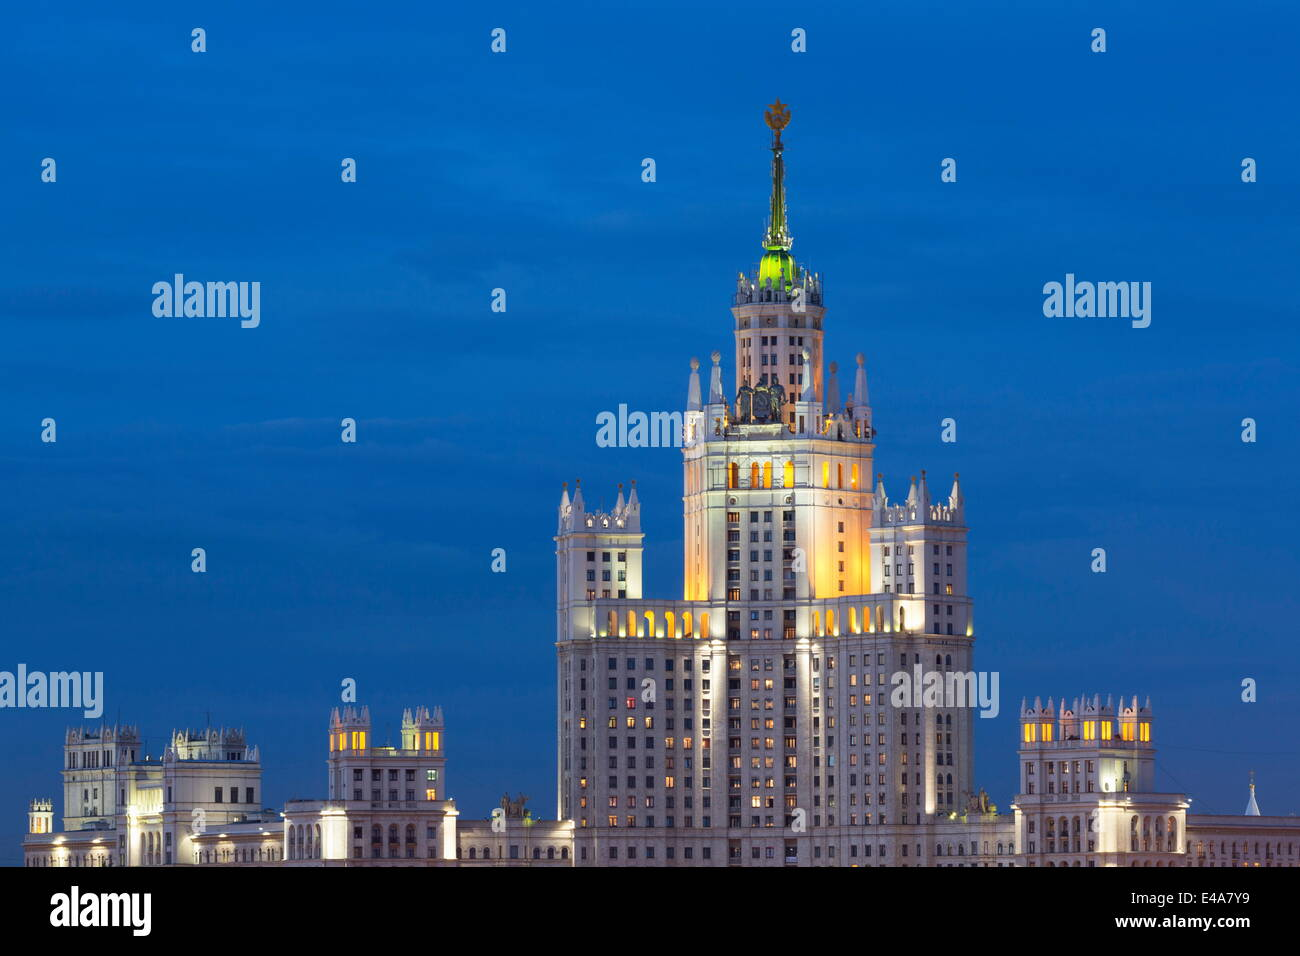 Moscow skyline at night with Stalanist-Gothic skyscraper, Moscow, Russia, Europe - Stock Image